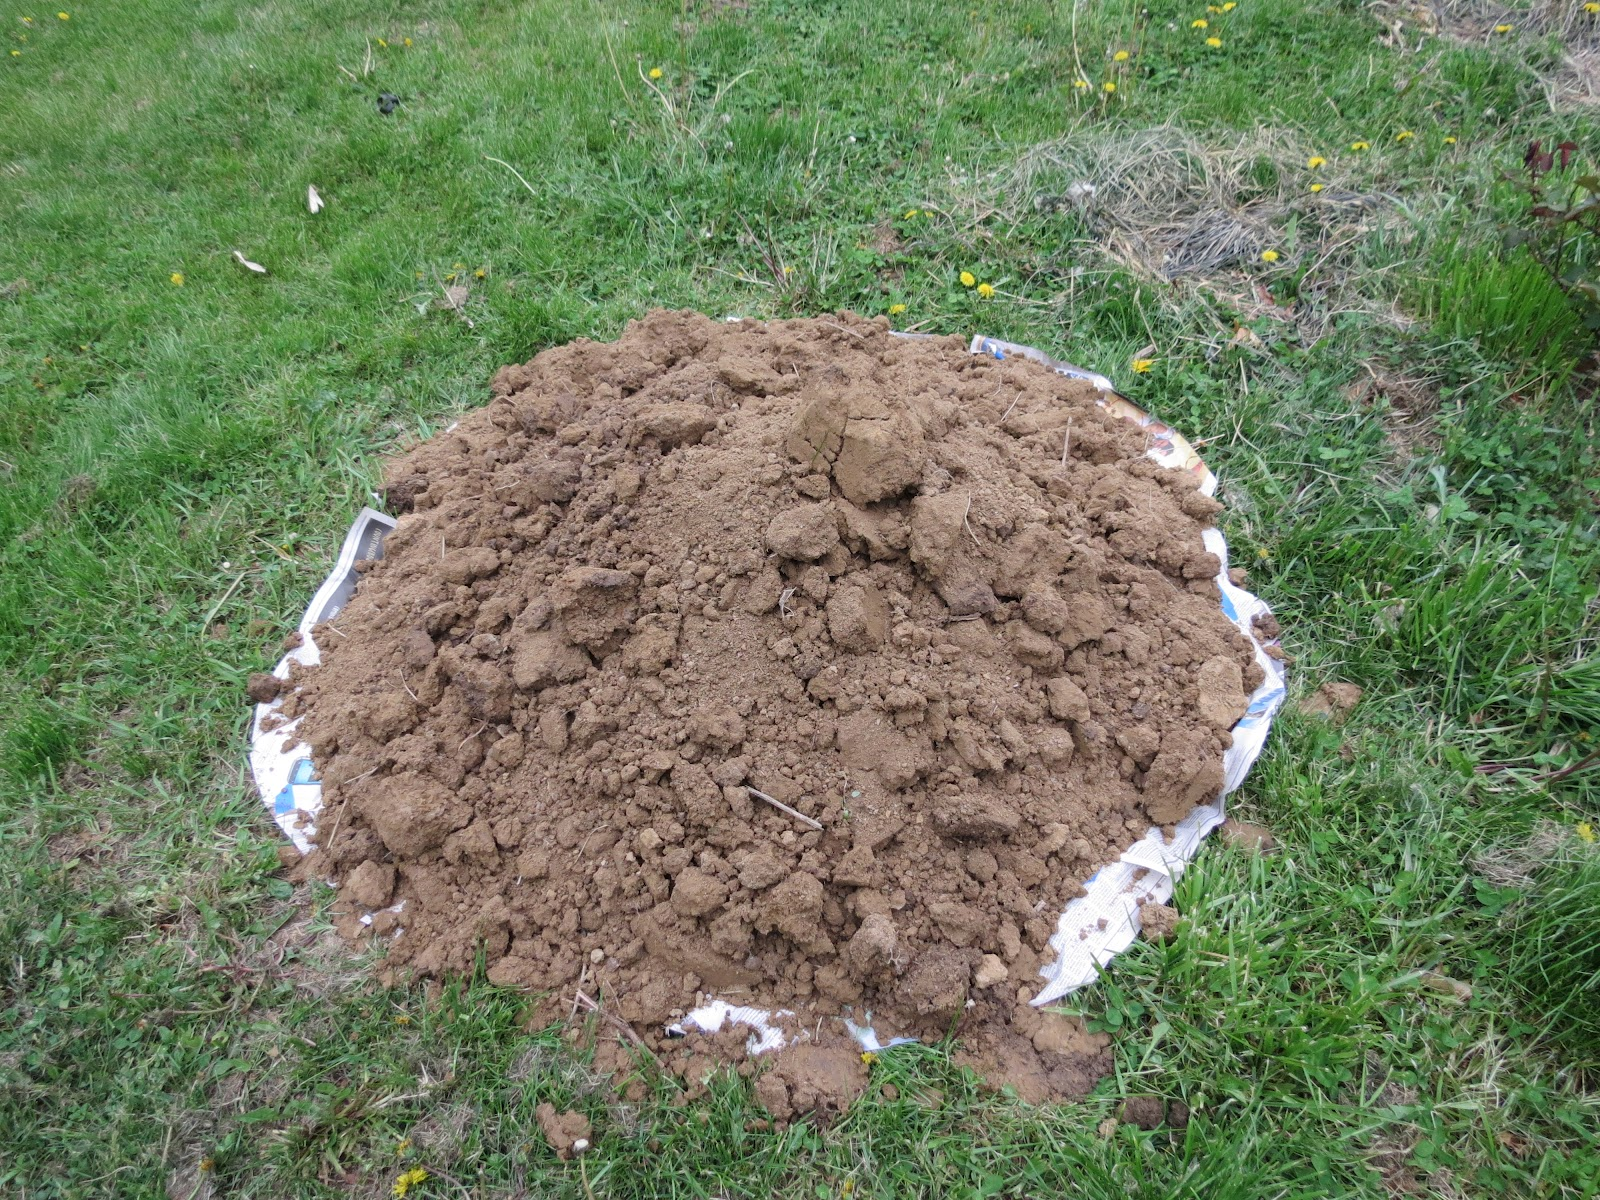 My Freezer is Full: A pile of dirt!